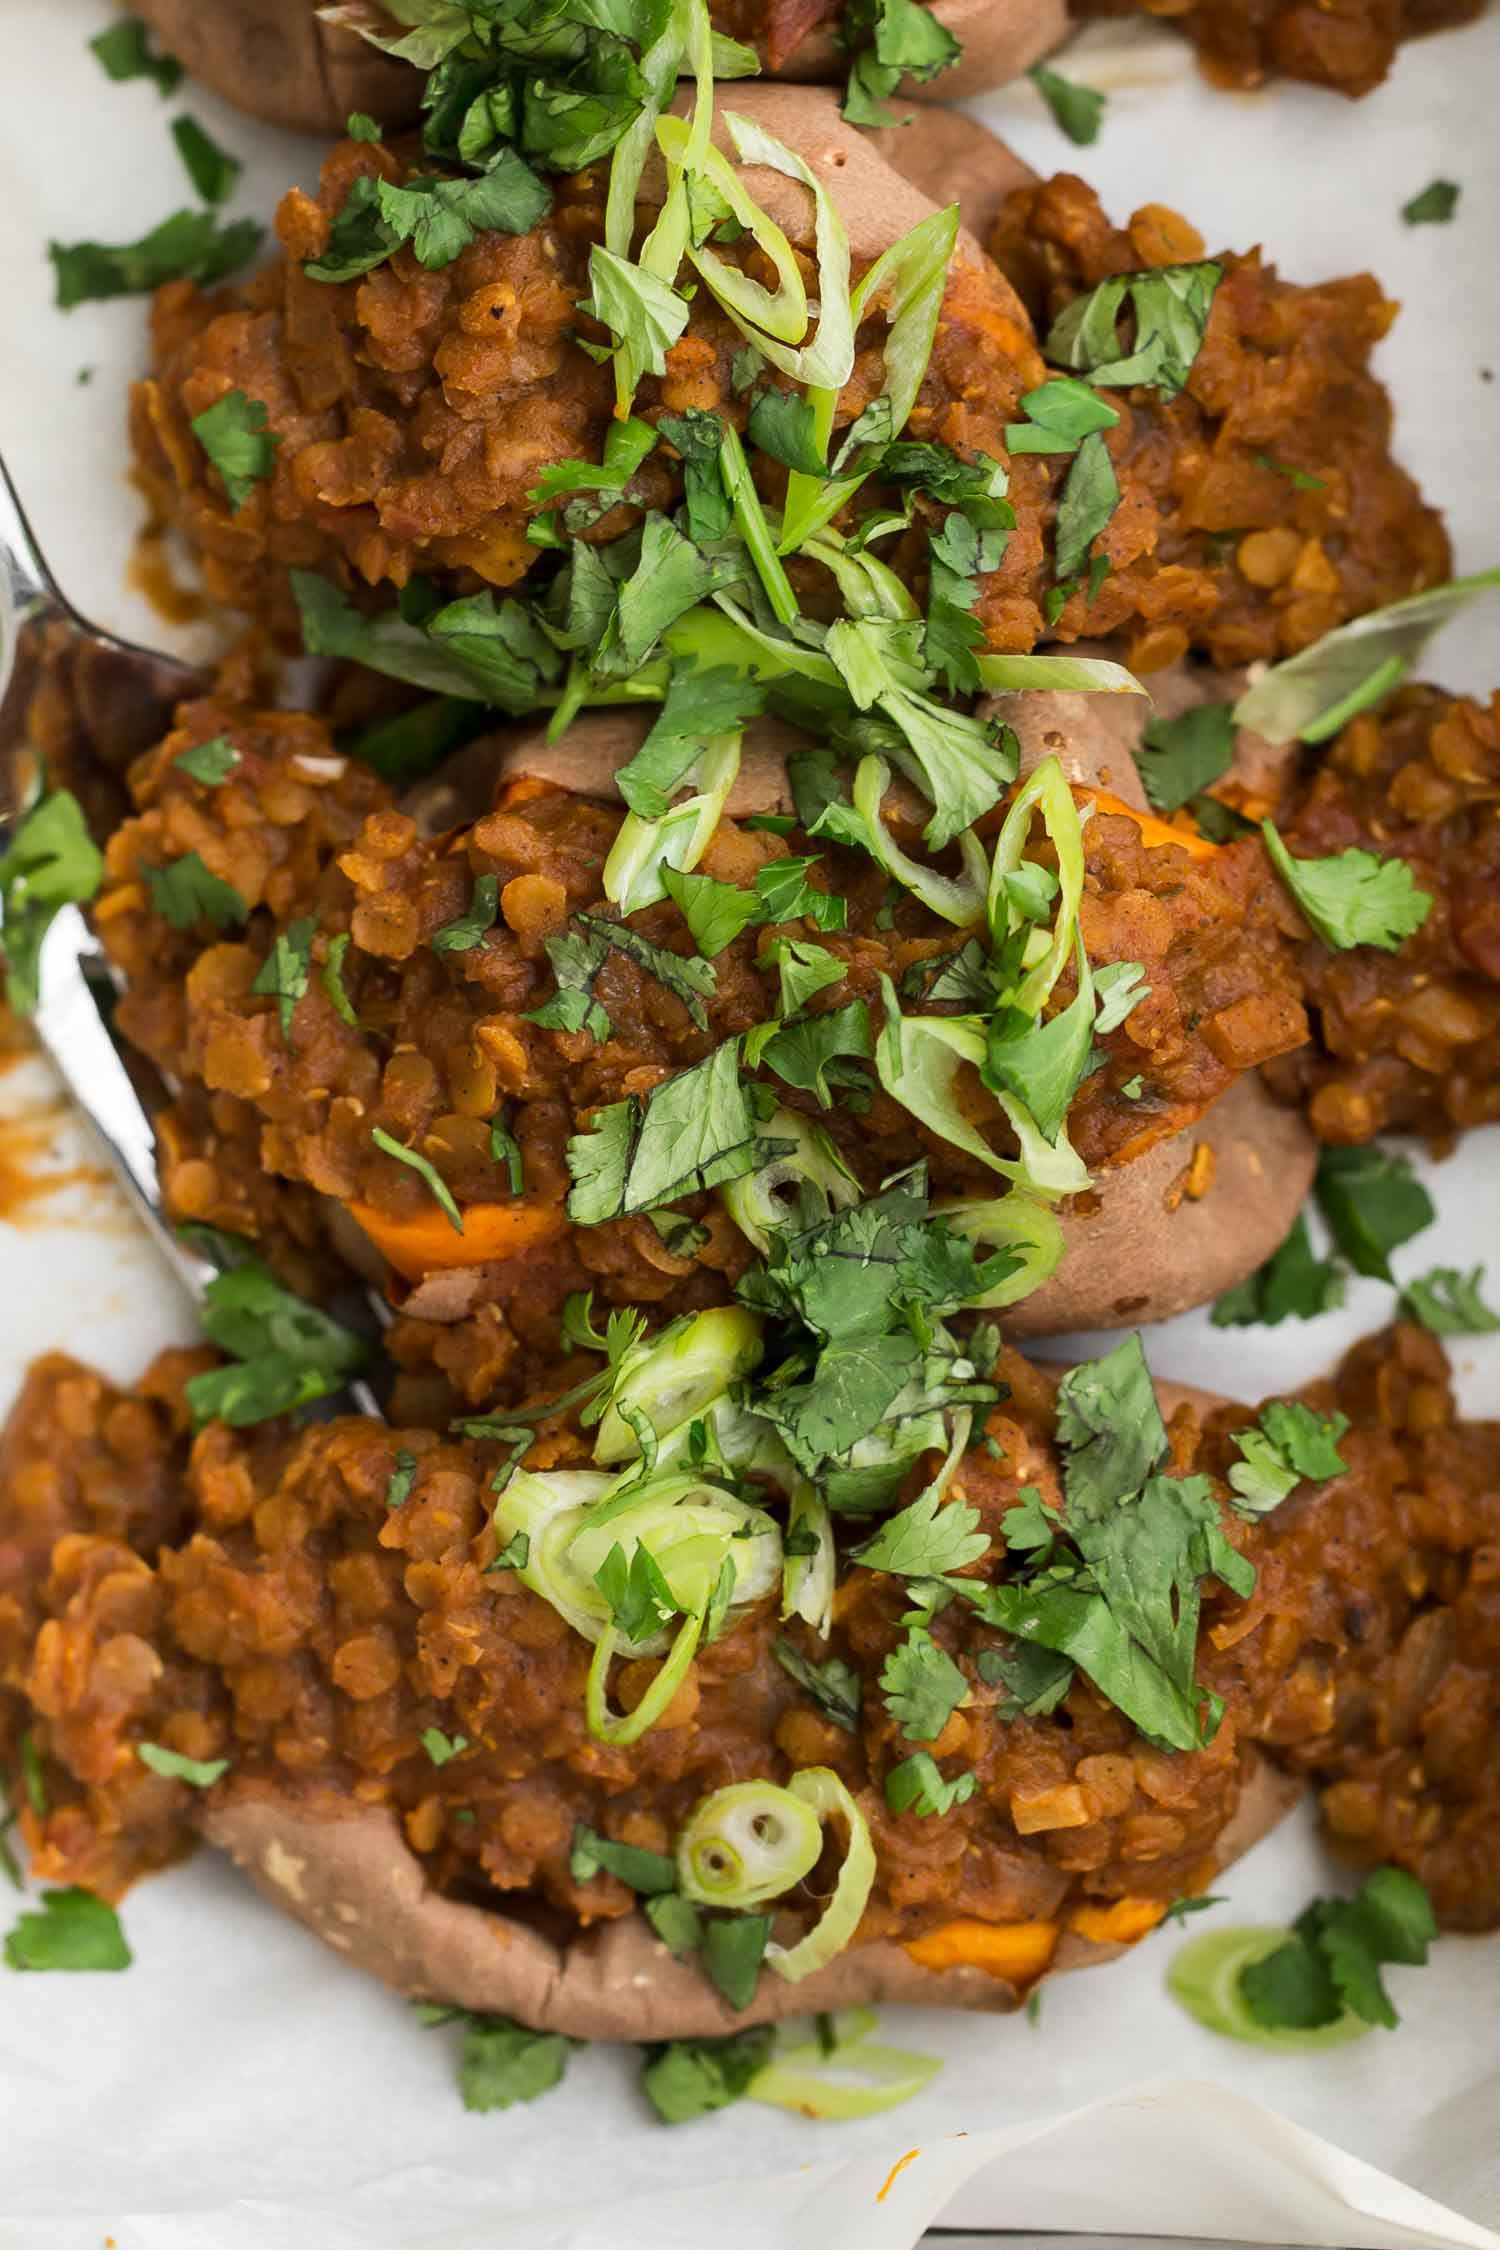 Chili Lentils Over Sweet Potatoes